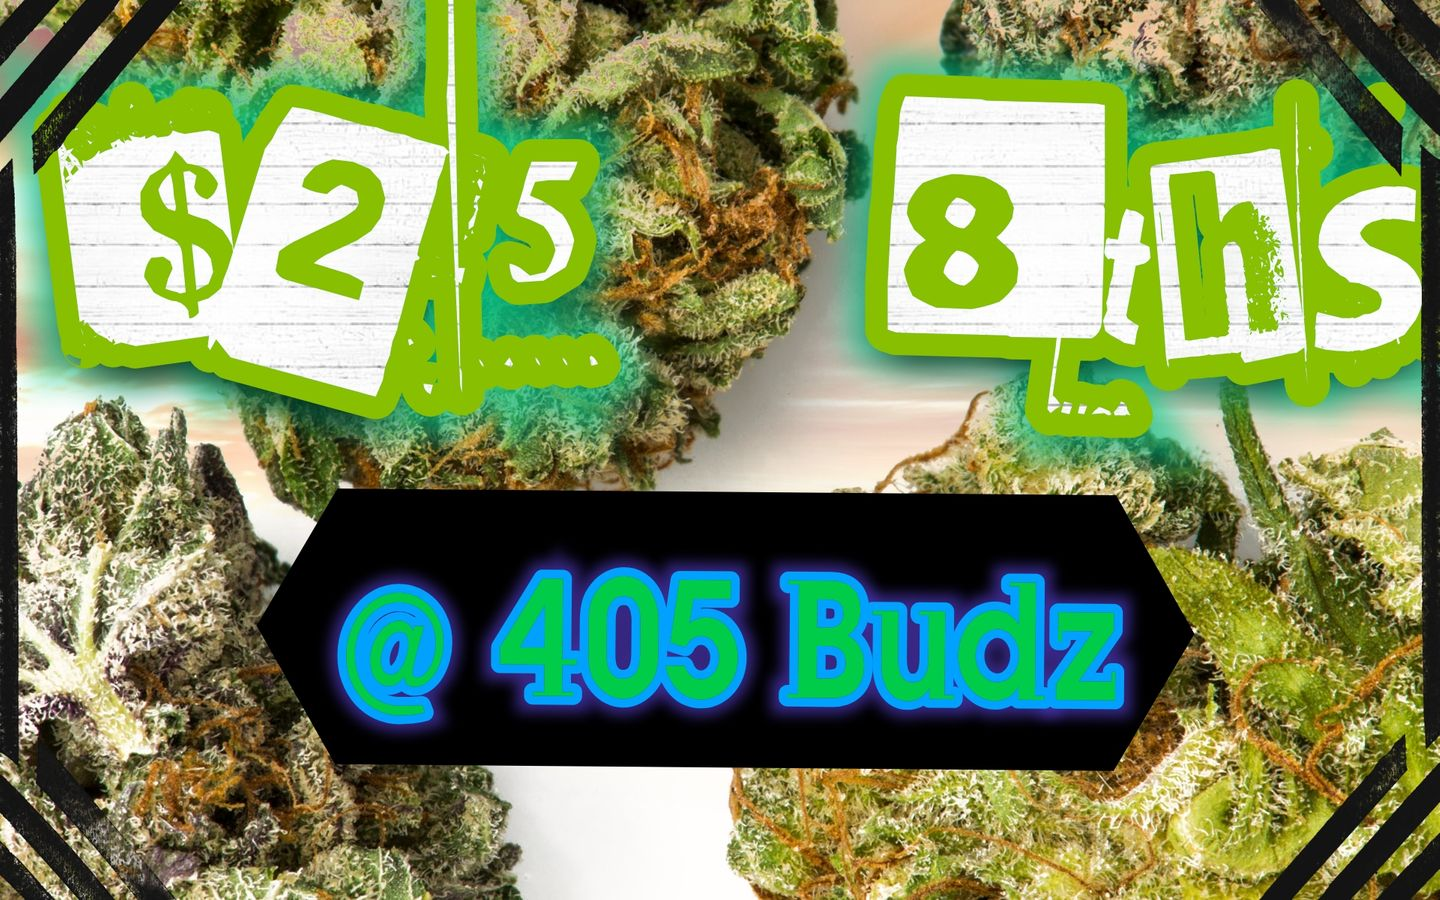 store photos 405 BUDZ (Open 24-7)